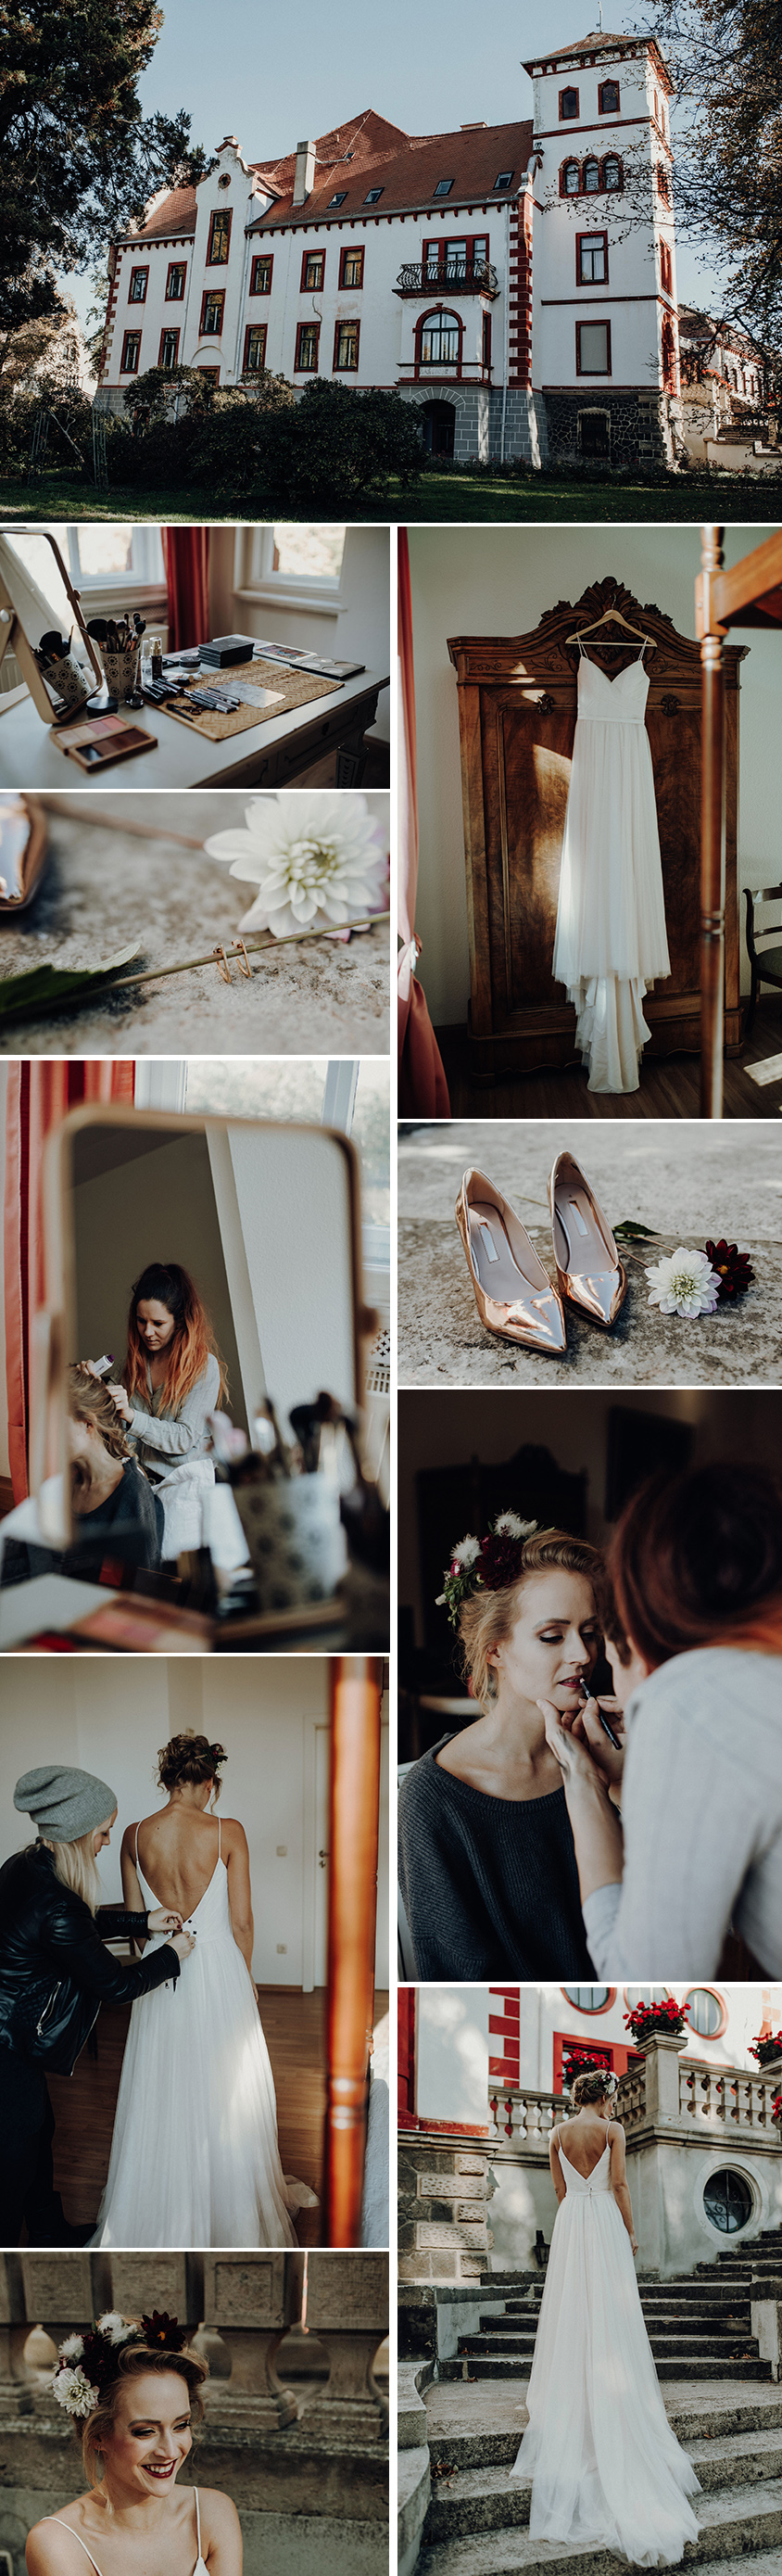 Autumn Freedom Weddinginspiration